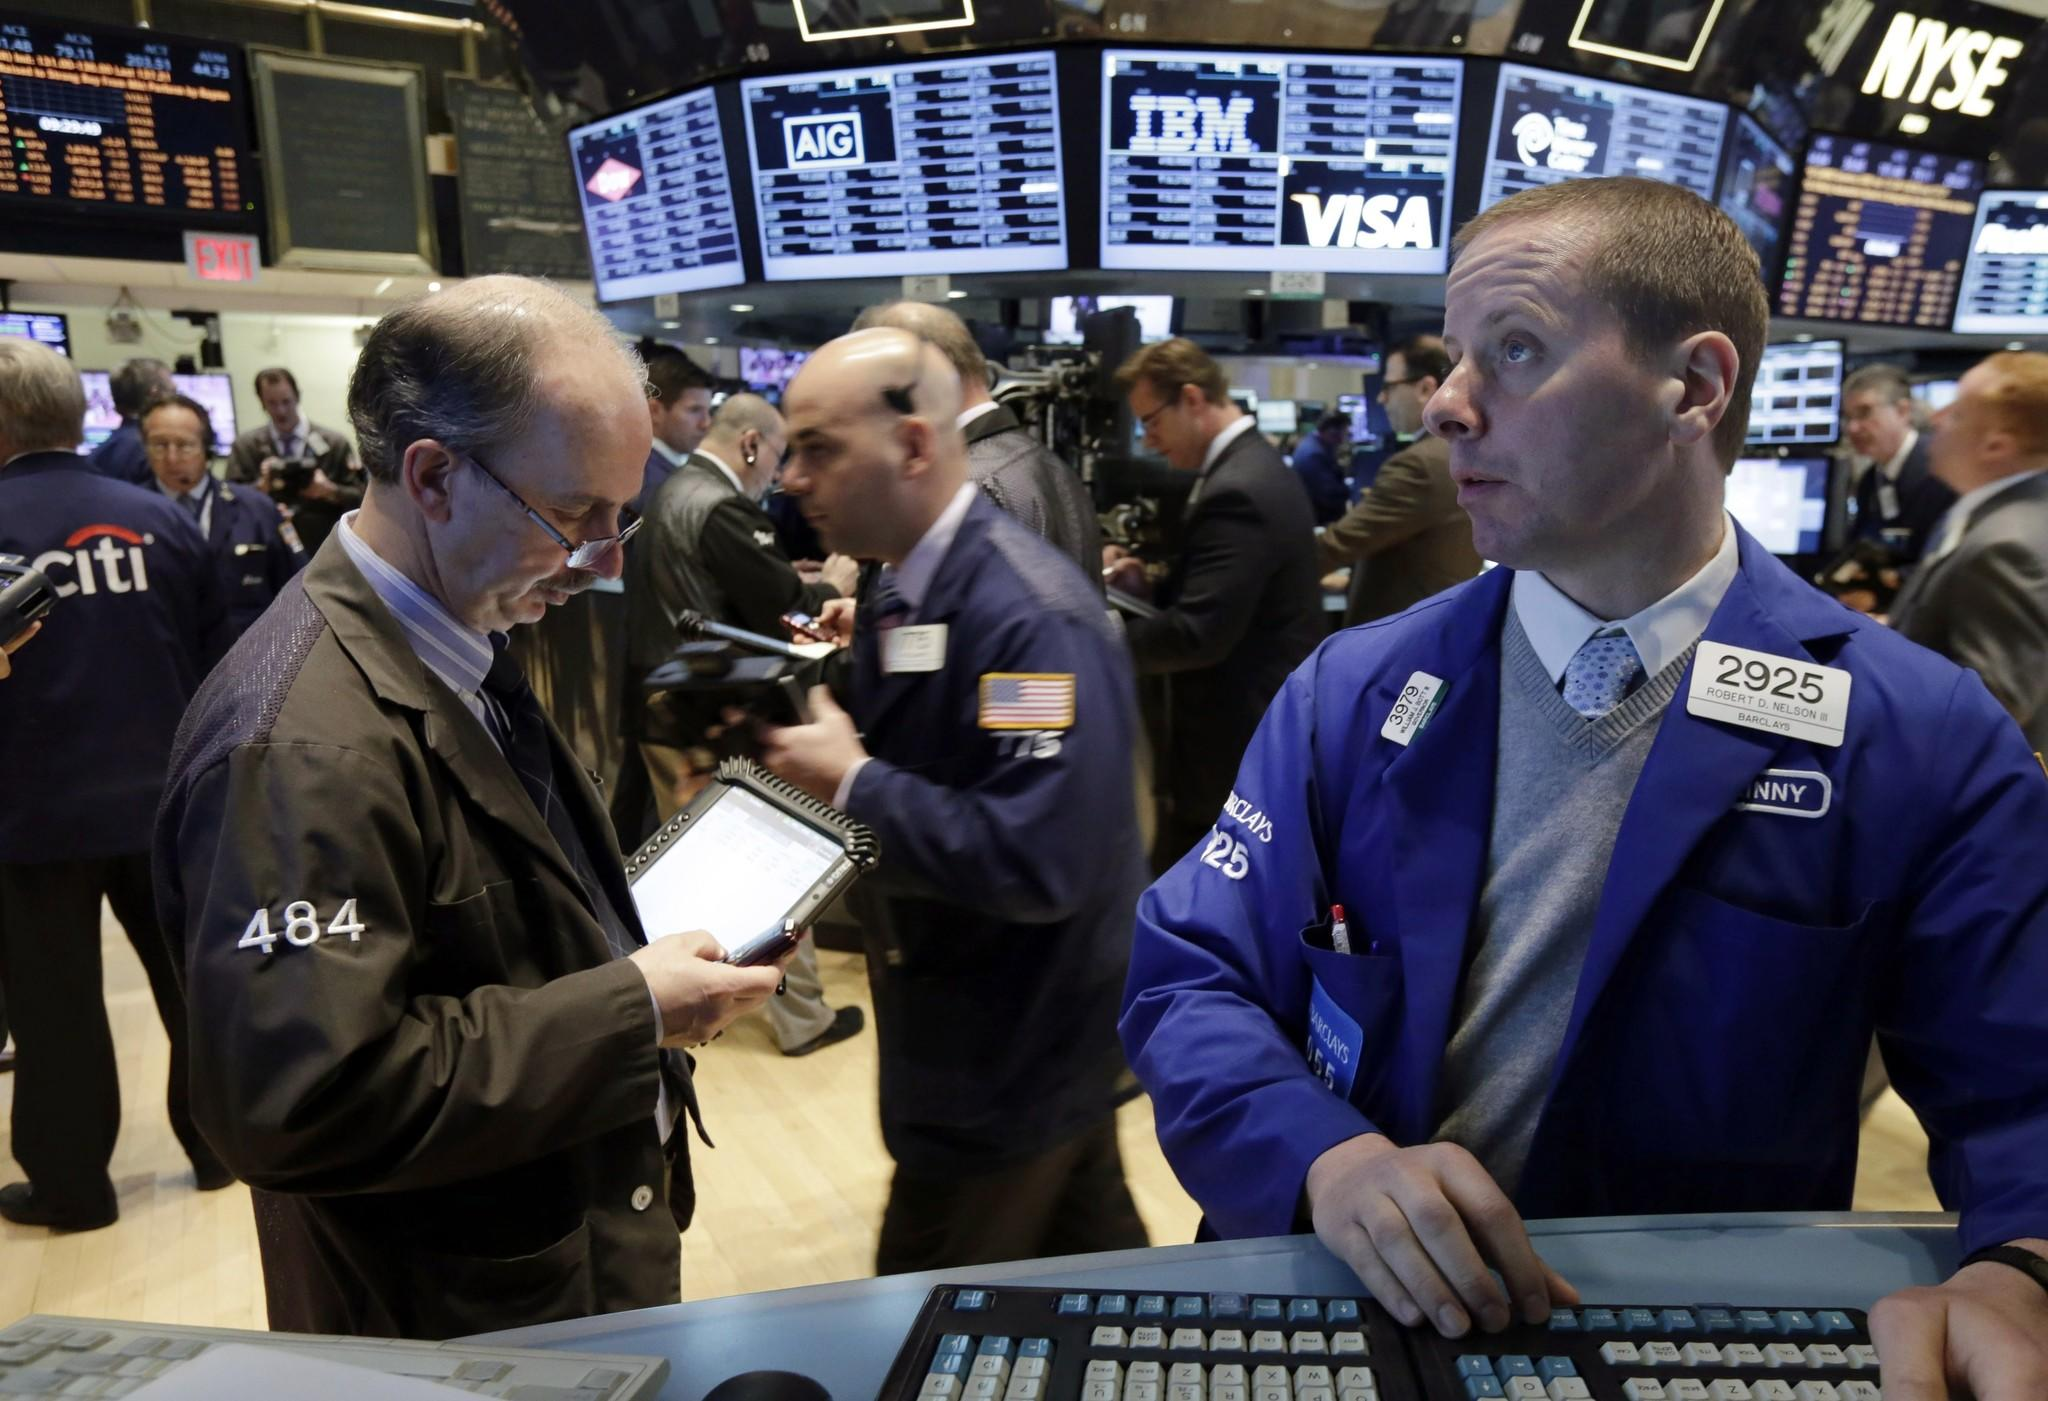 Zimmer Holdings shares were up more than 14% after it announced Thursday that it would acquire orthopedic products company Biomet in a deal valued at $13.35 billion. Pictured: Overall Thursday morning trading at the New York Stock Exchange.